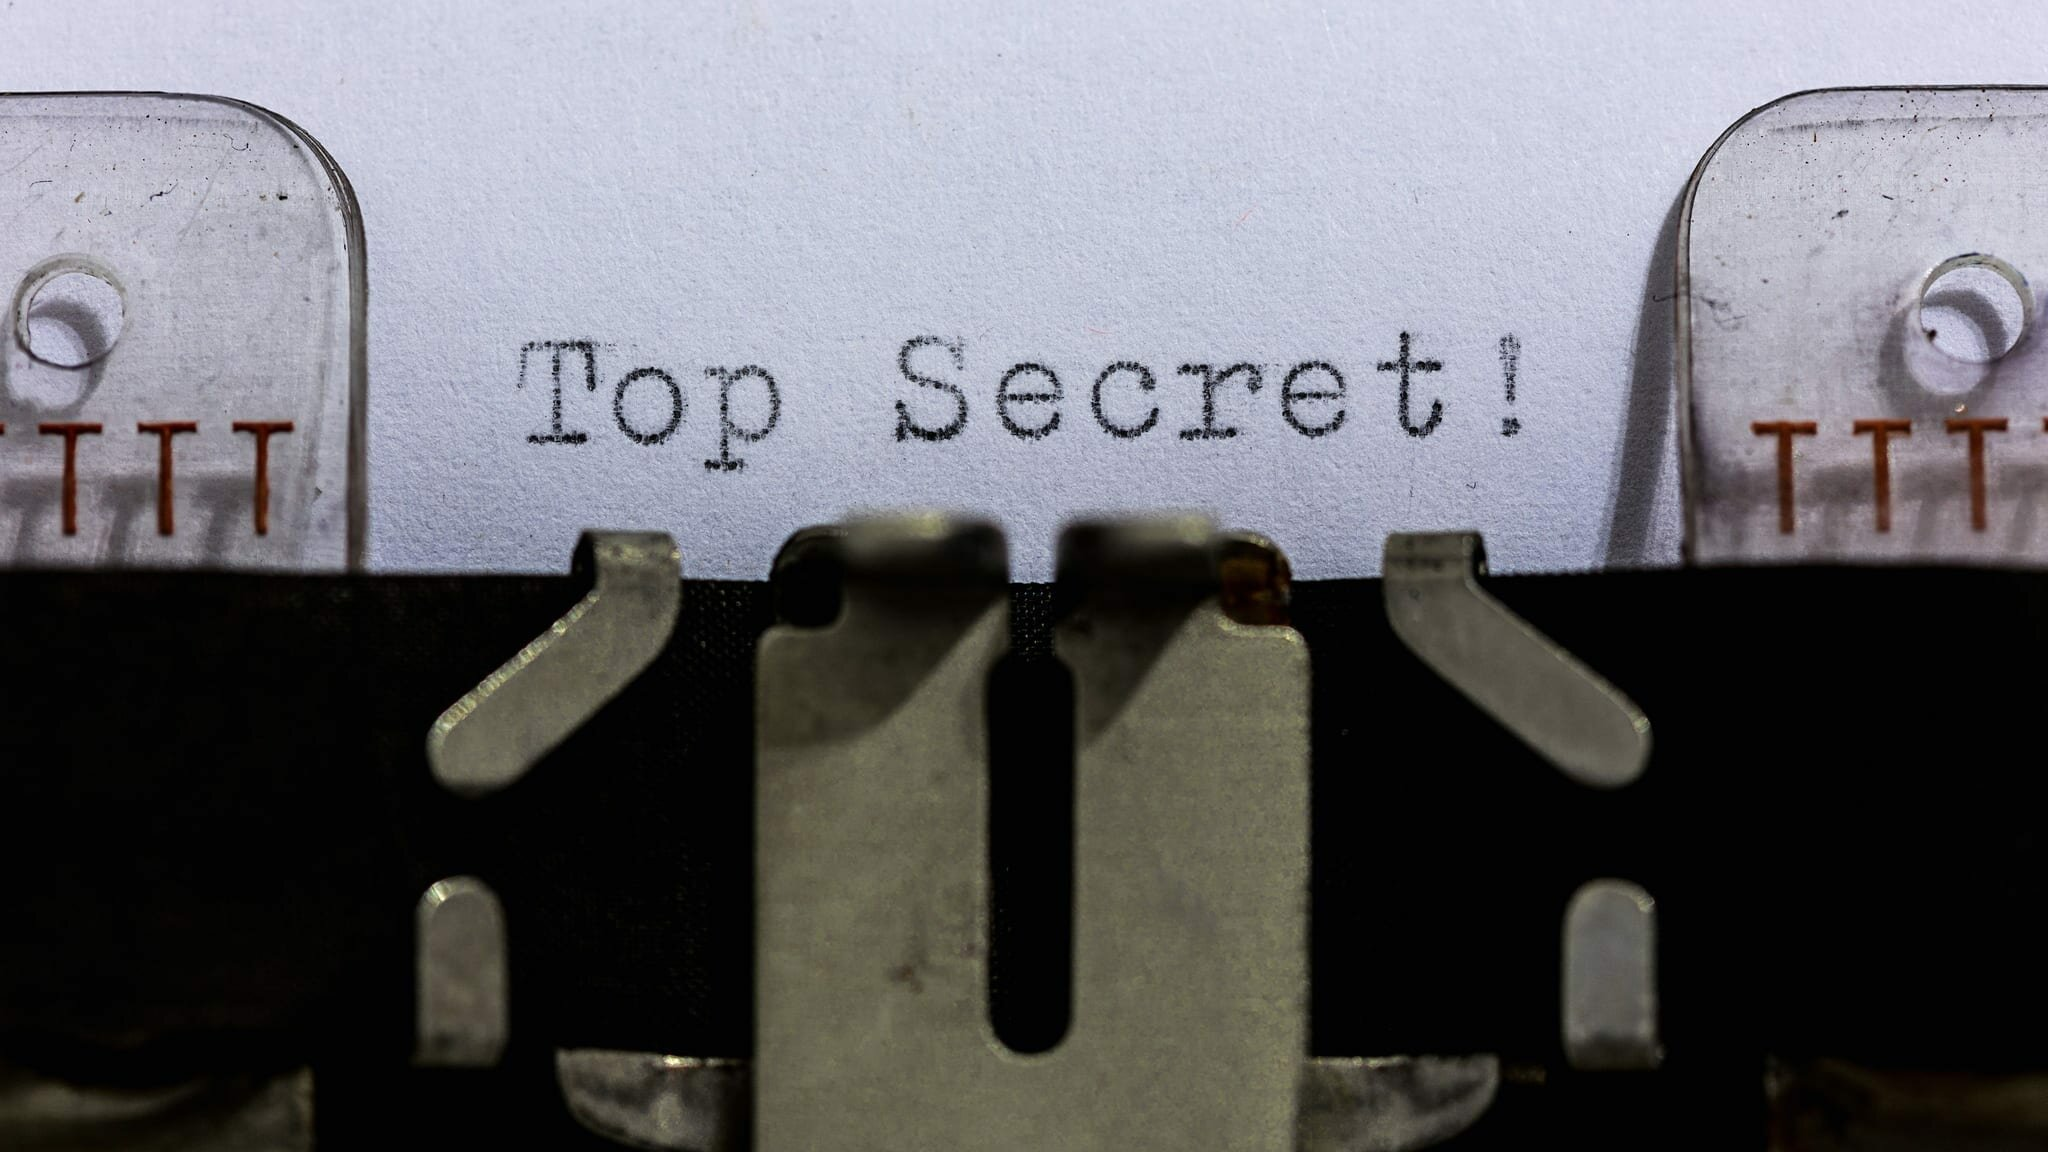 Top Secret; Autor: Dennis Skley; Źródło: flickr.com